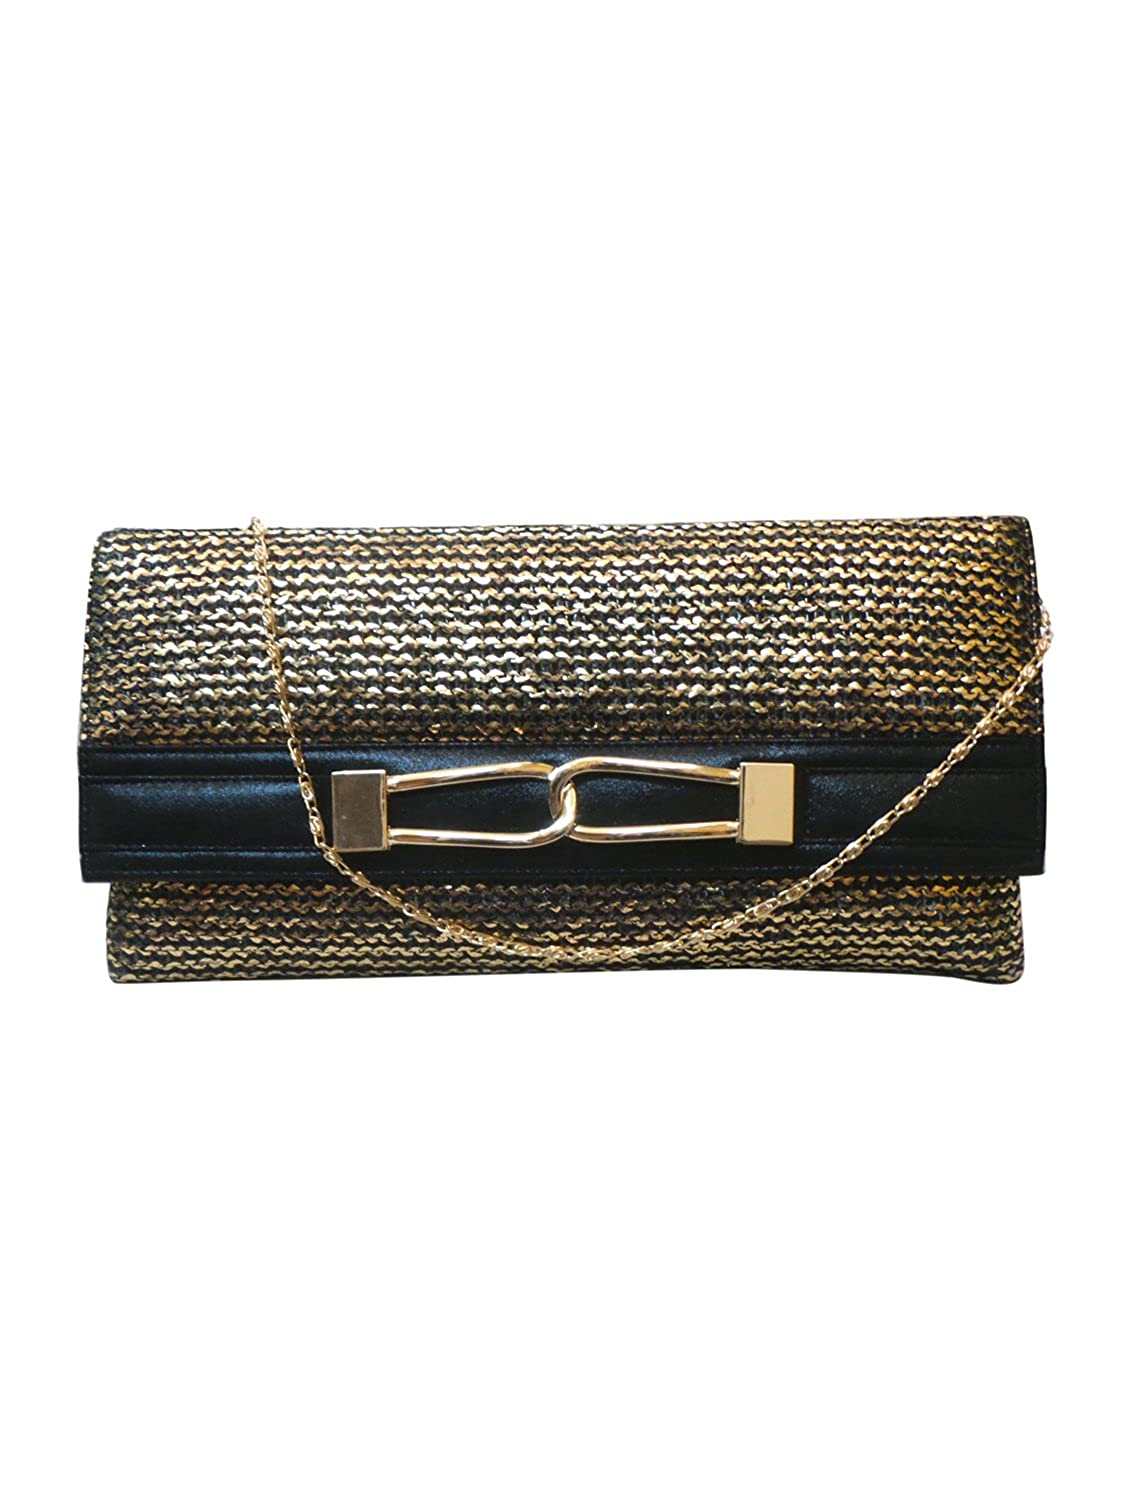 Bhamini Black Gold Touch Jute Clutch with Metal Loop Brooch